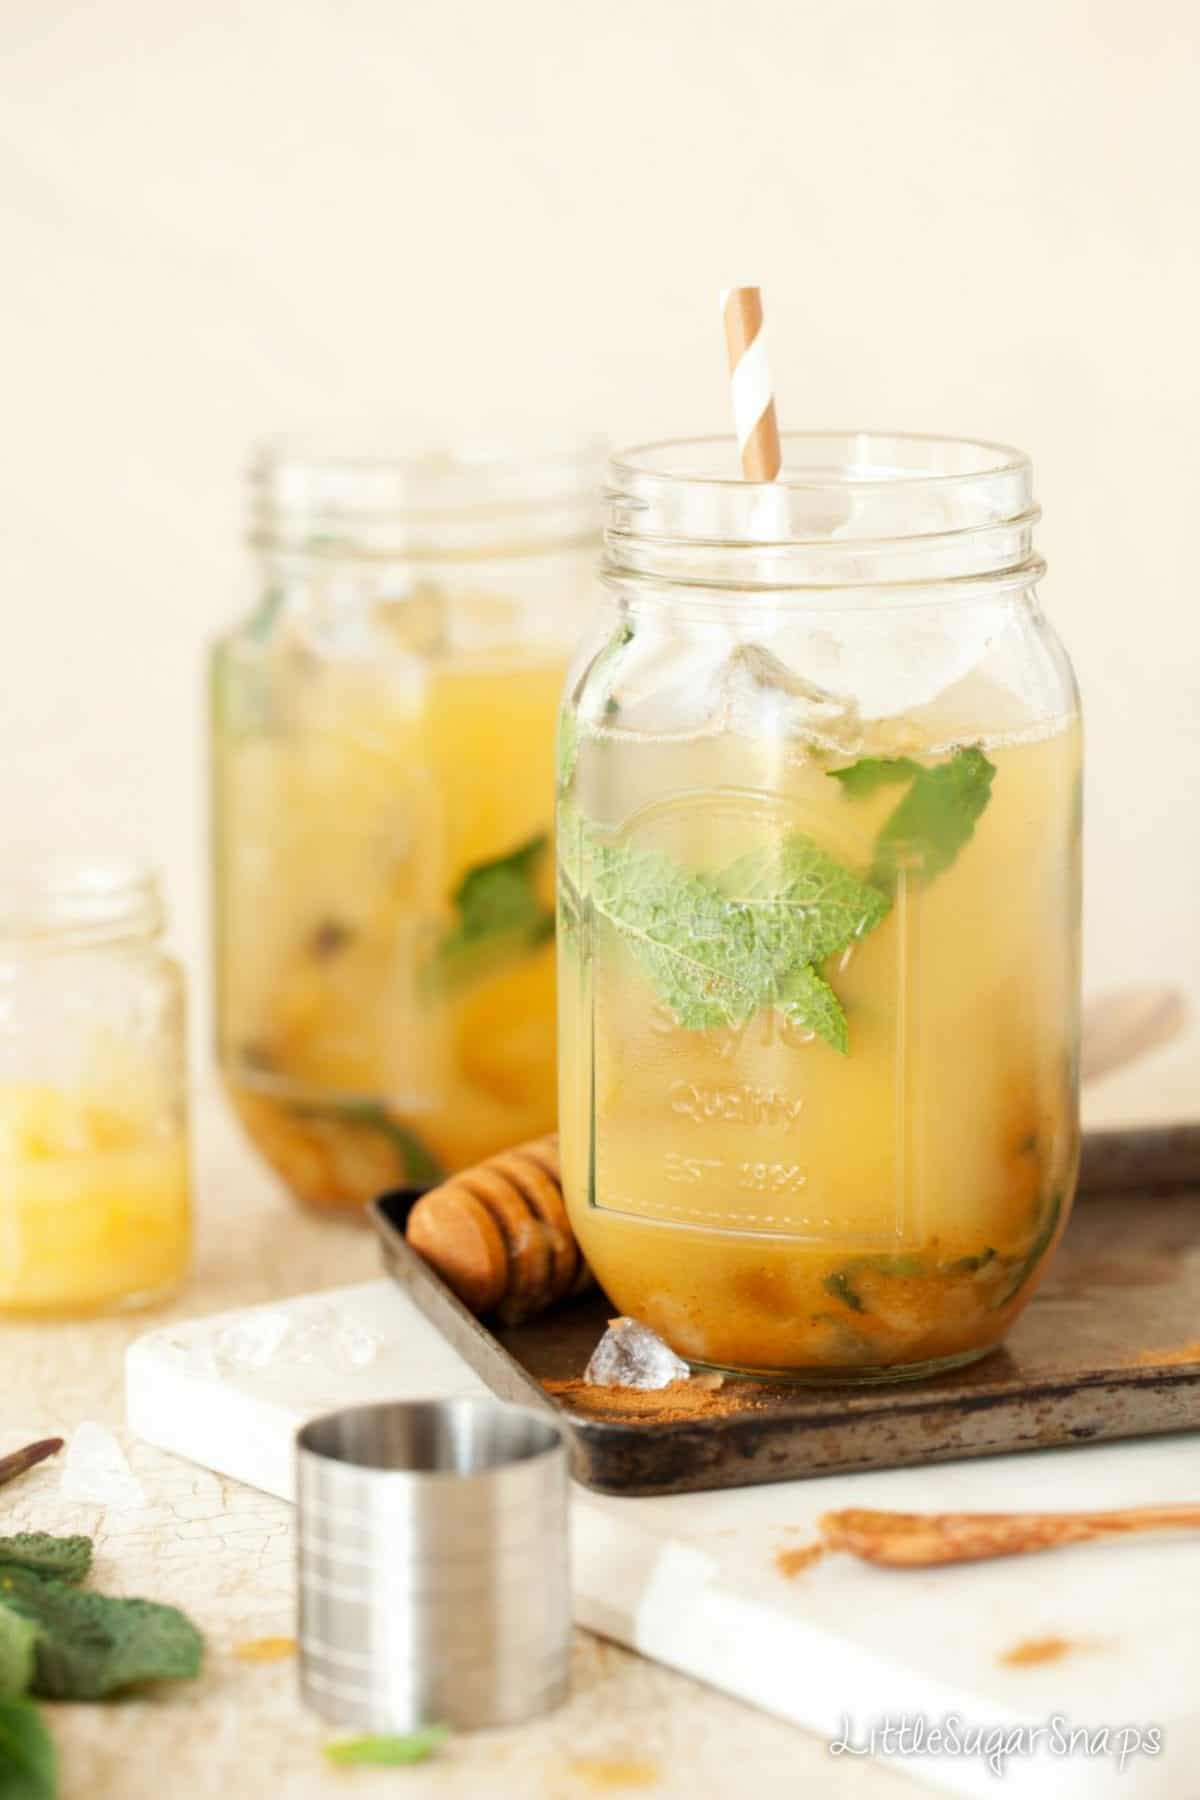 A blend of bourbon, pear, pineapple, mint and cinnamon drink in a jam jar with a cocktail jigger in shot